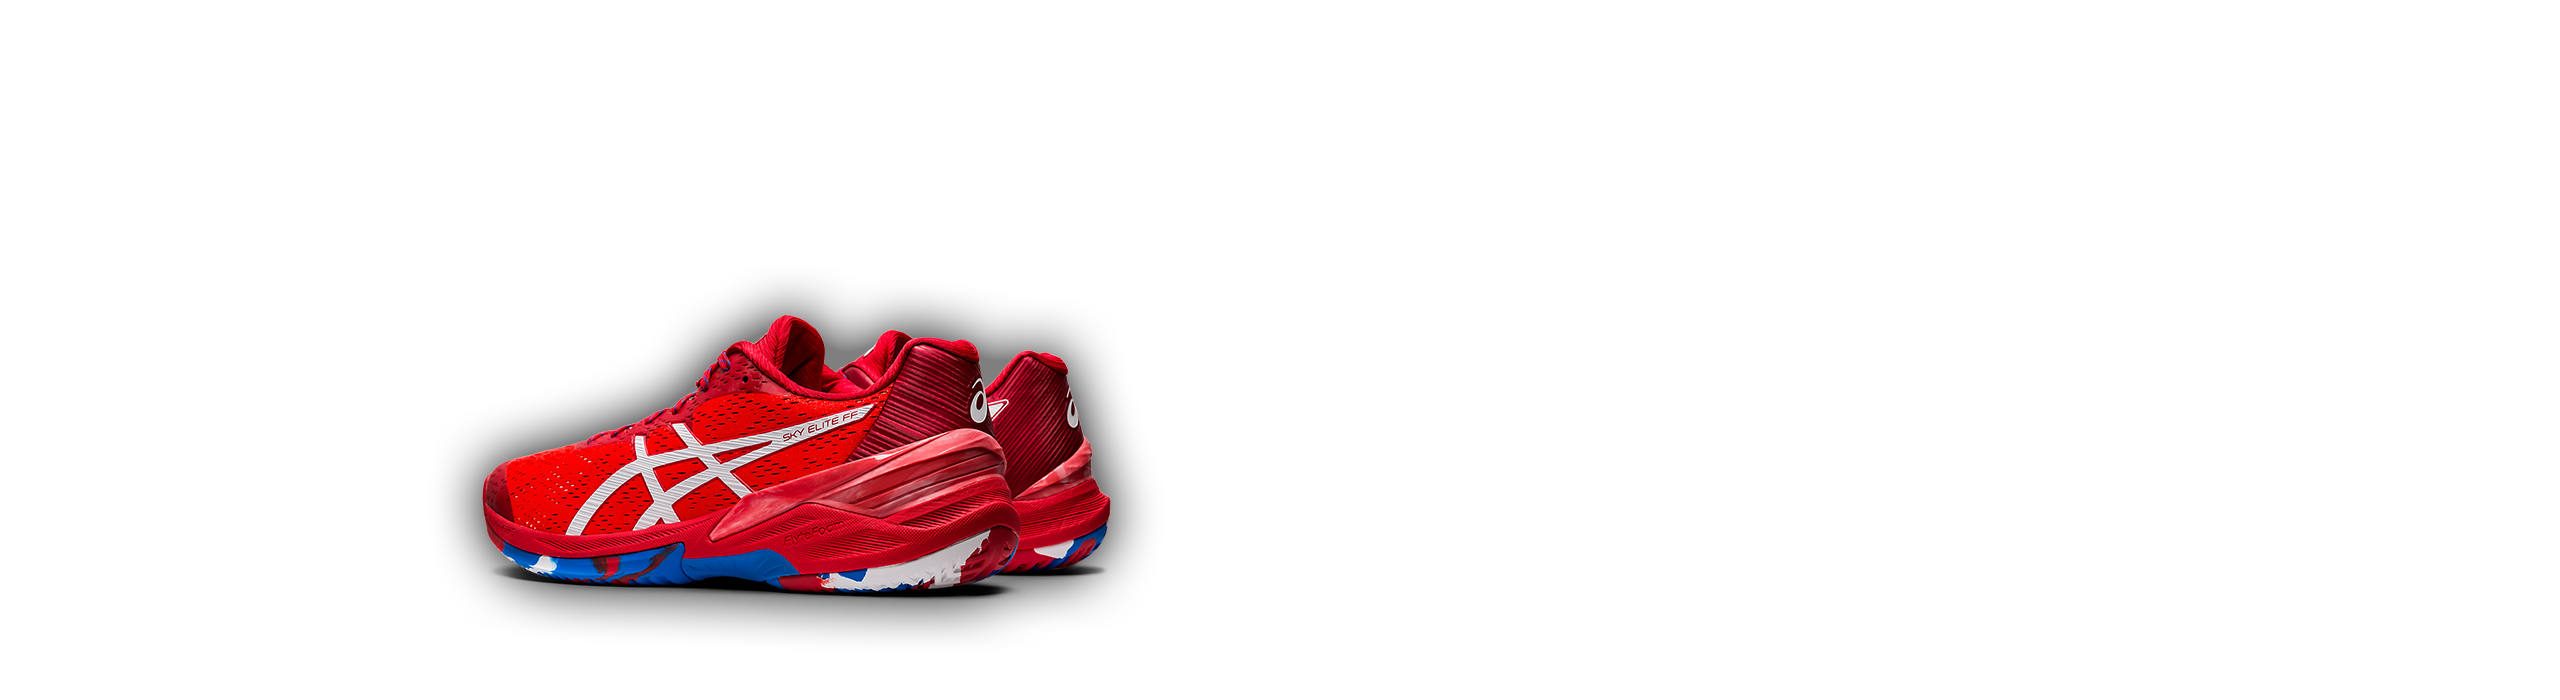 shoes3.png